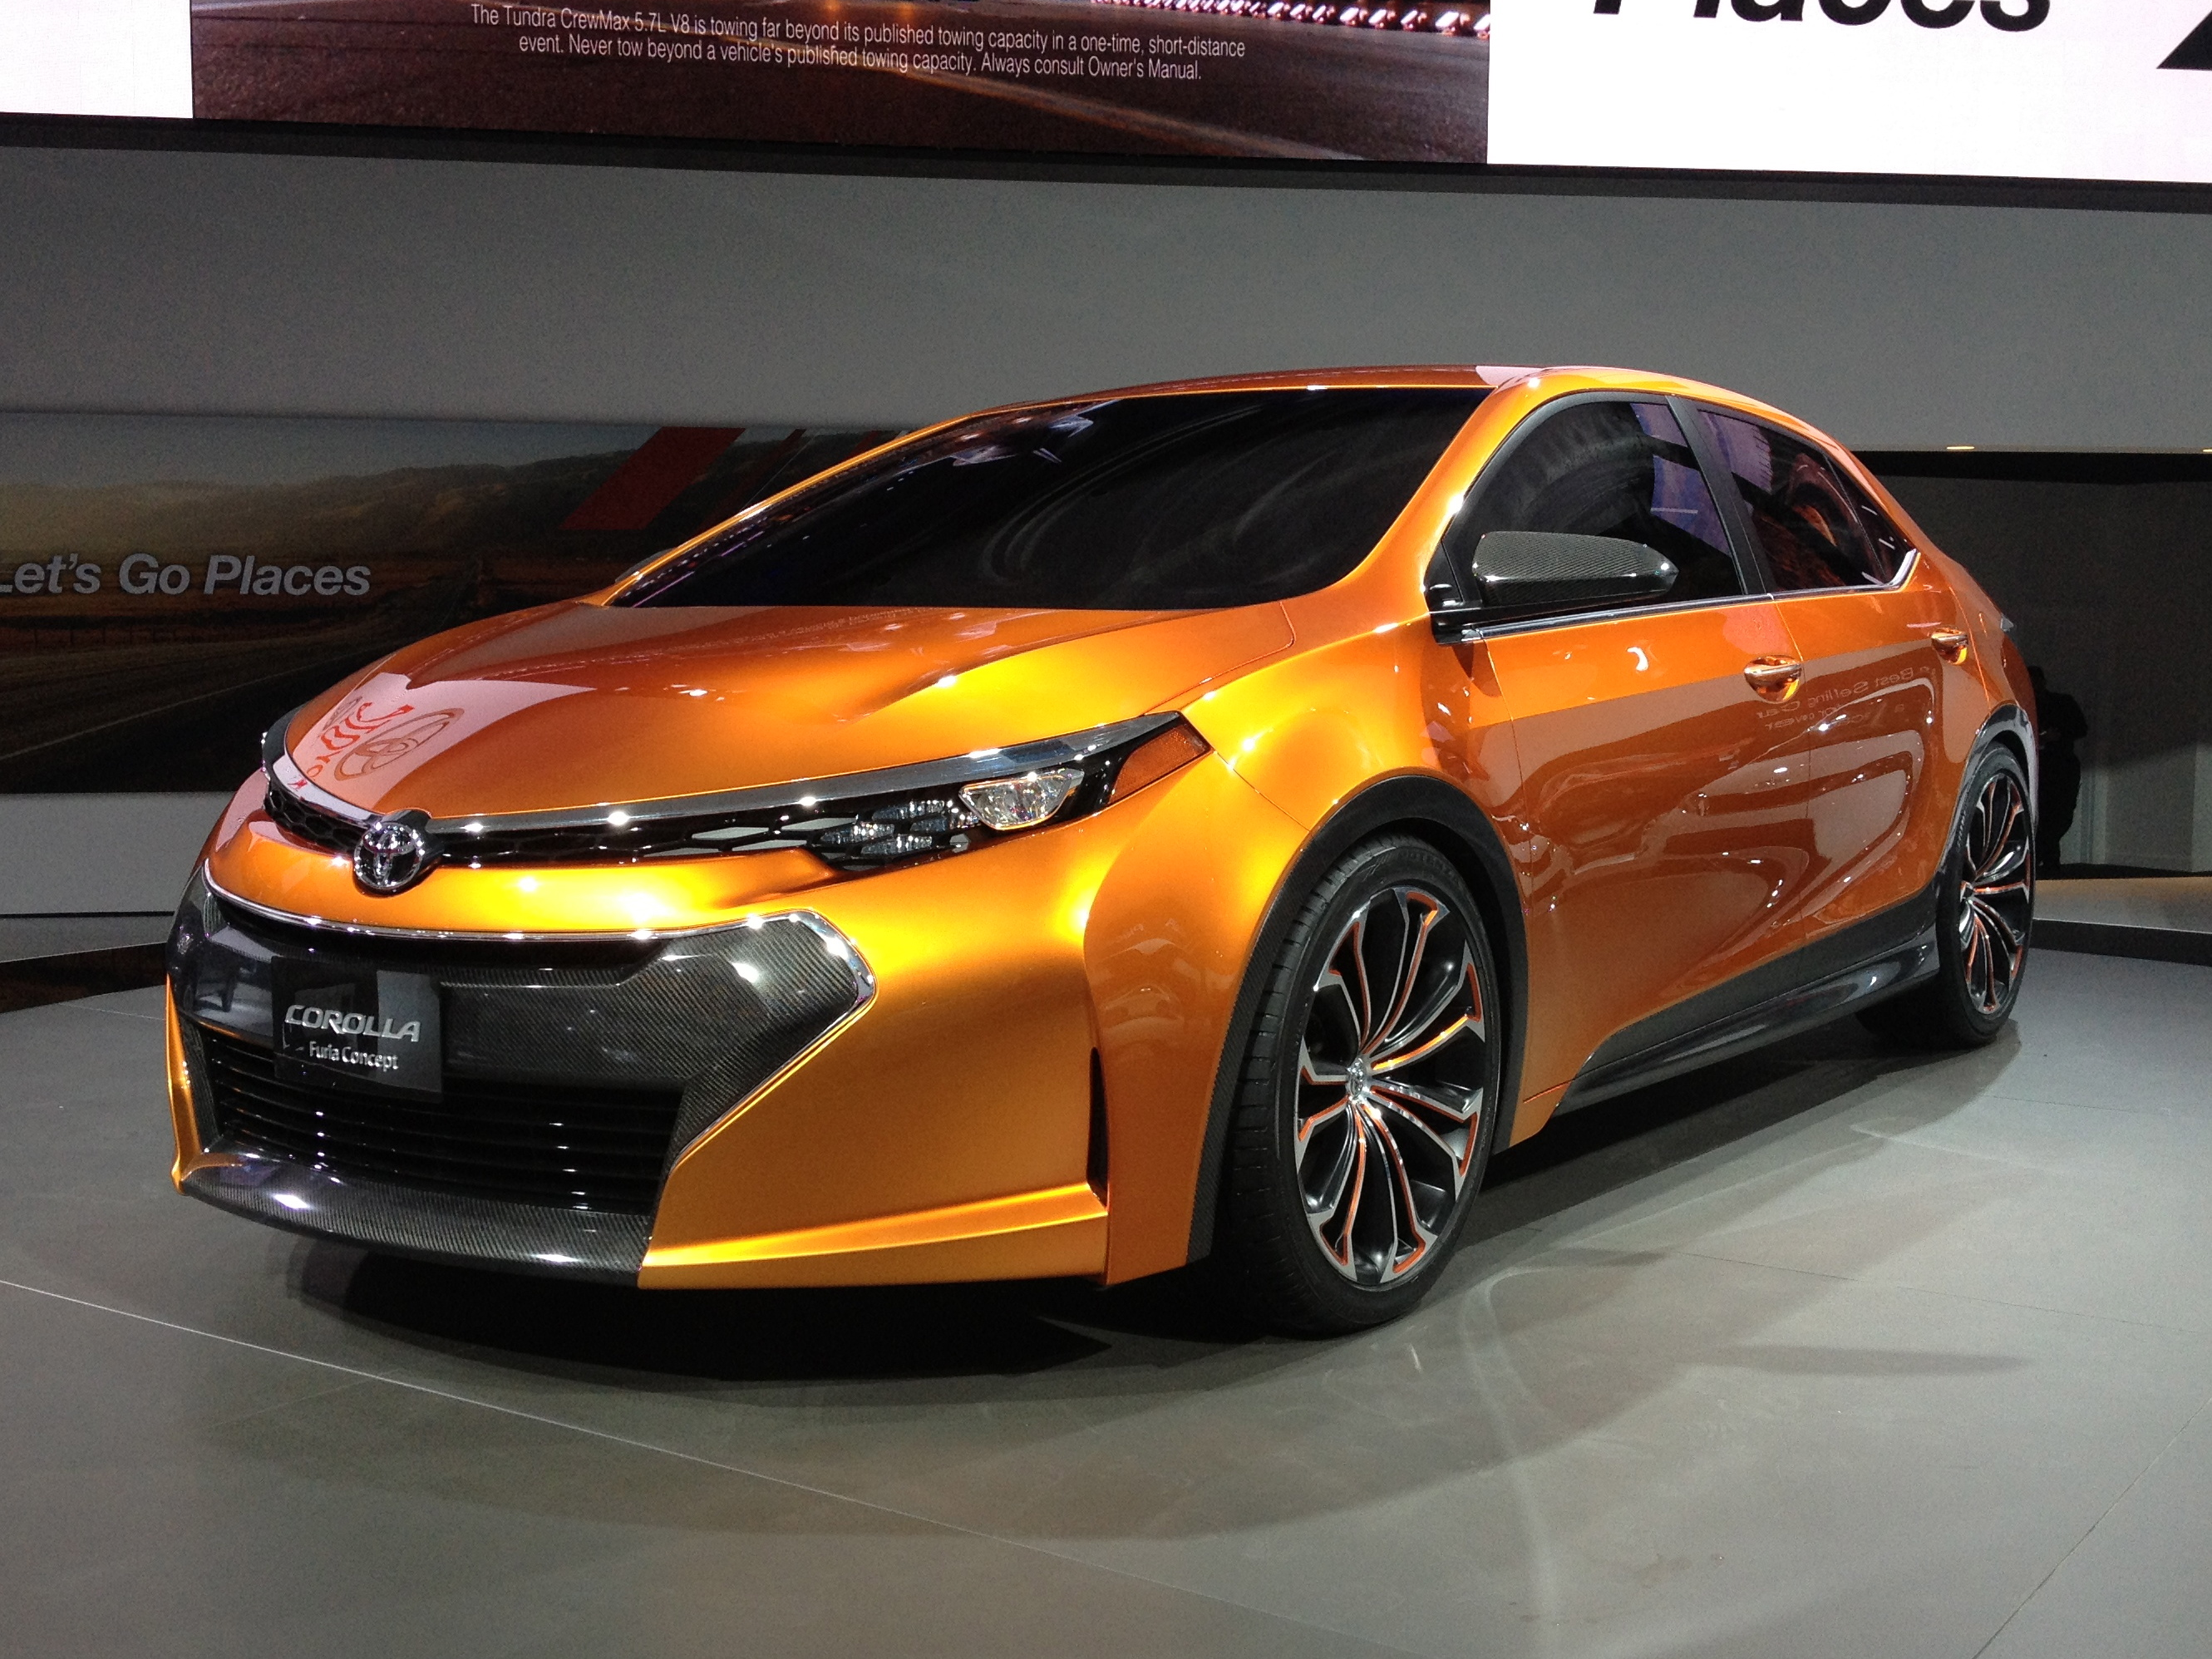 questions abound for toyota s new 2014 corolla john leblanc 39 s straight six. Black Bedroom Furniture Sets. Home Design Ideas